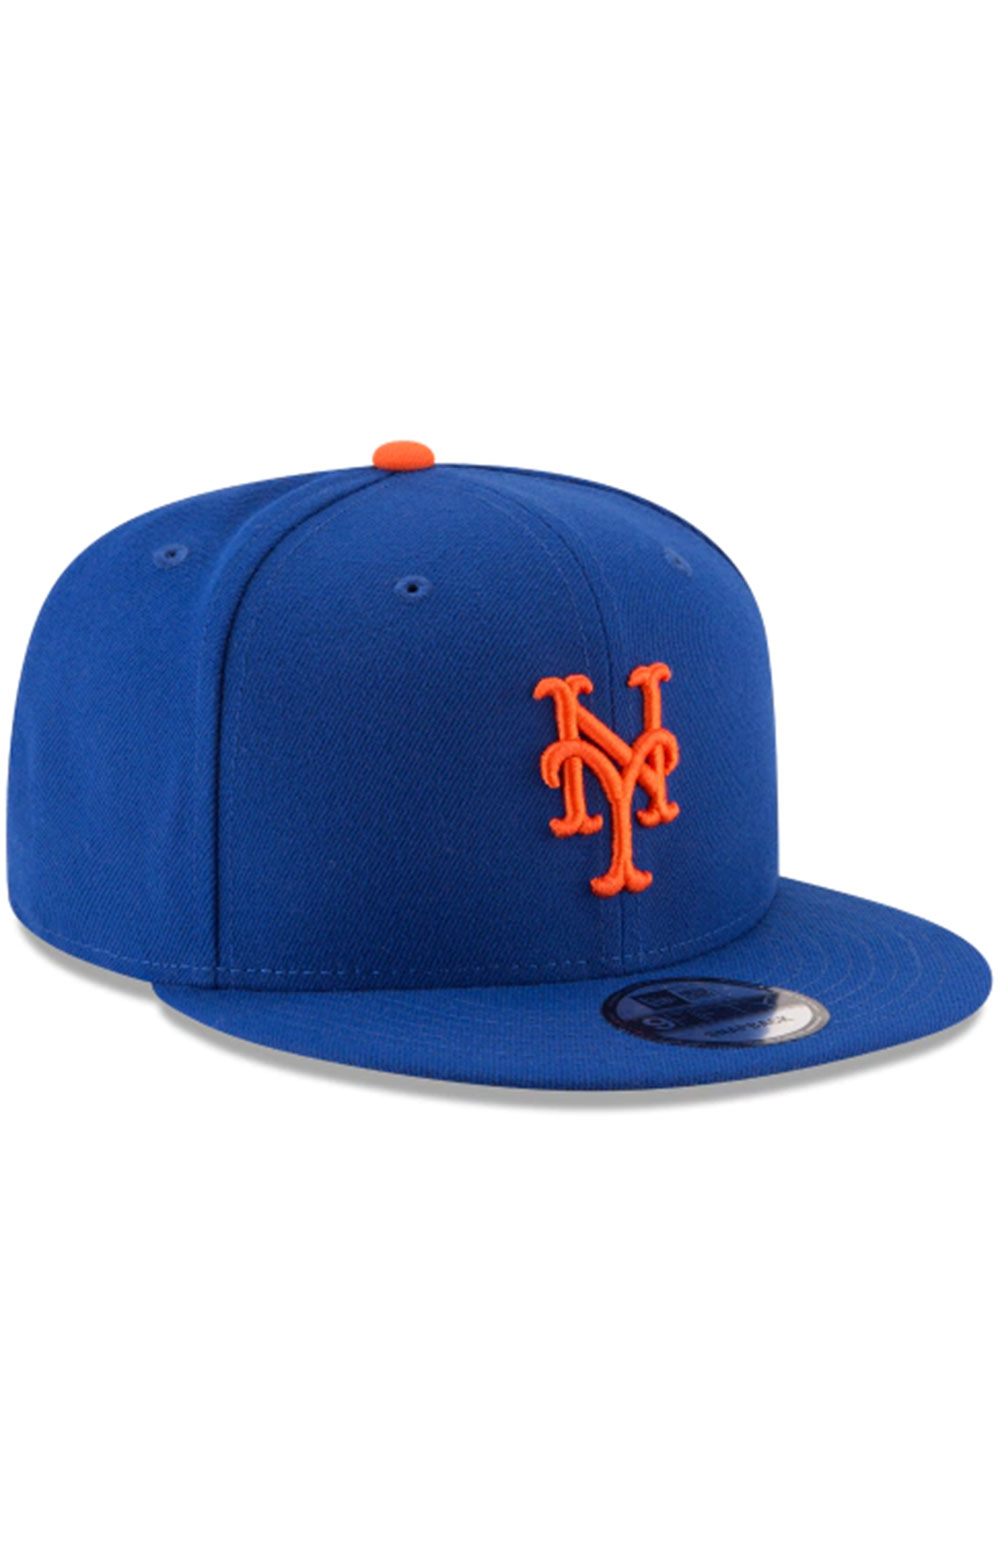 New York Mets Team Color Basic 9Fifty Snap-Back Hat  6